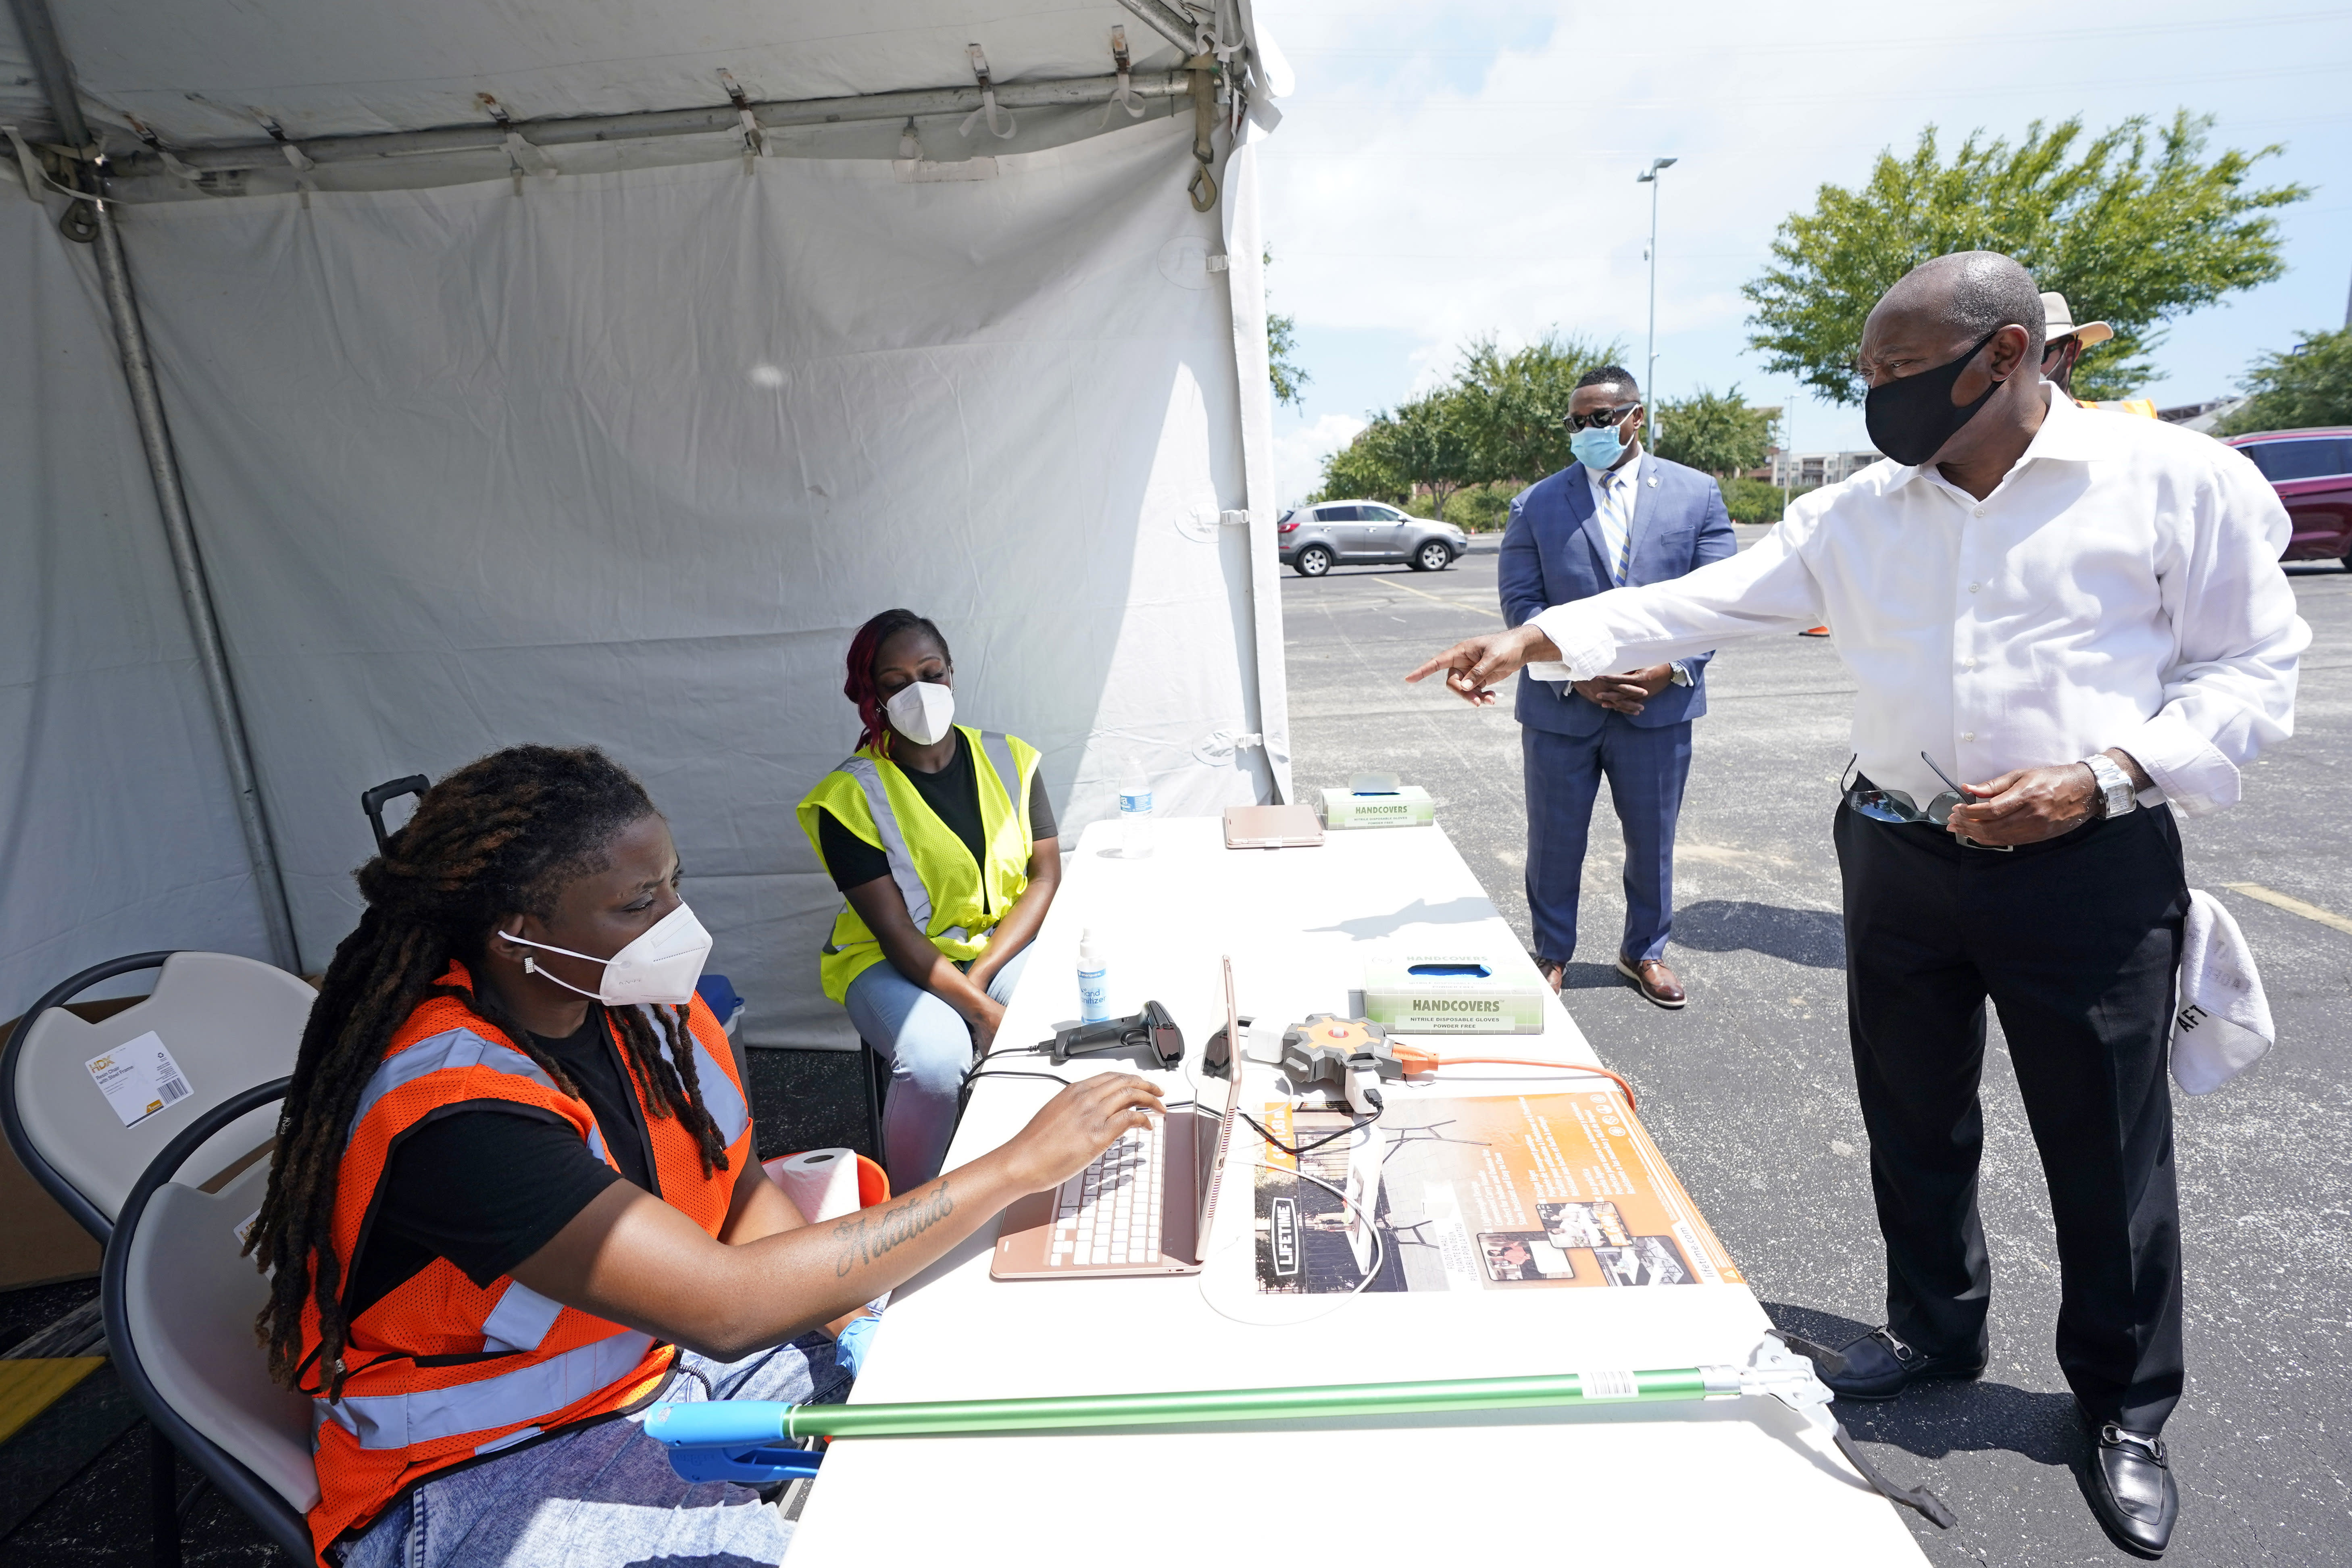 Houston Mayor Sylvester Turner, right, talks with healthcare workers at a Texas Division of Emergency Management free COVID-19 testing site at Minute Maid Park Saturday, Aug. 8, 2020, in Houston. UNICEF-USA is teaming up with Turner for the organization's first-ever initiative to support kids in the U.S. (AP Photo/David J. Phillip)